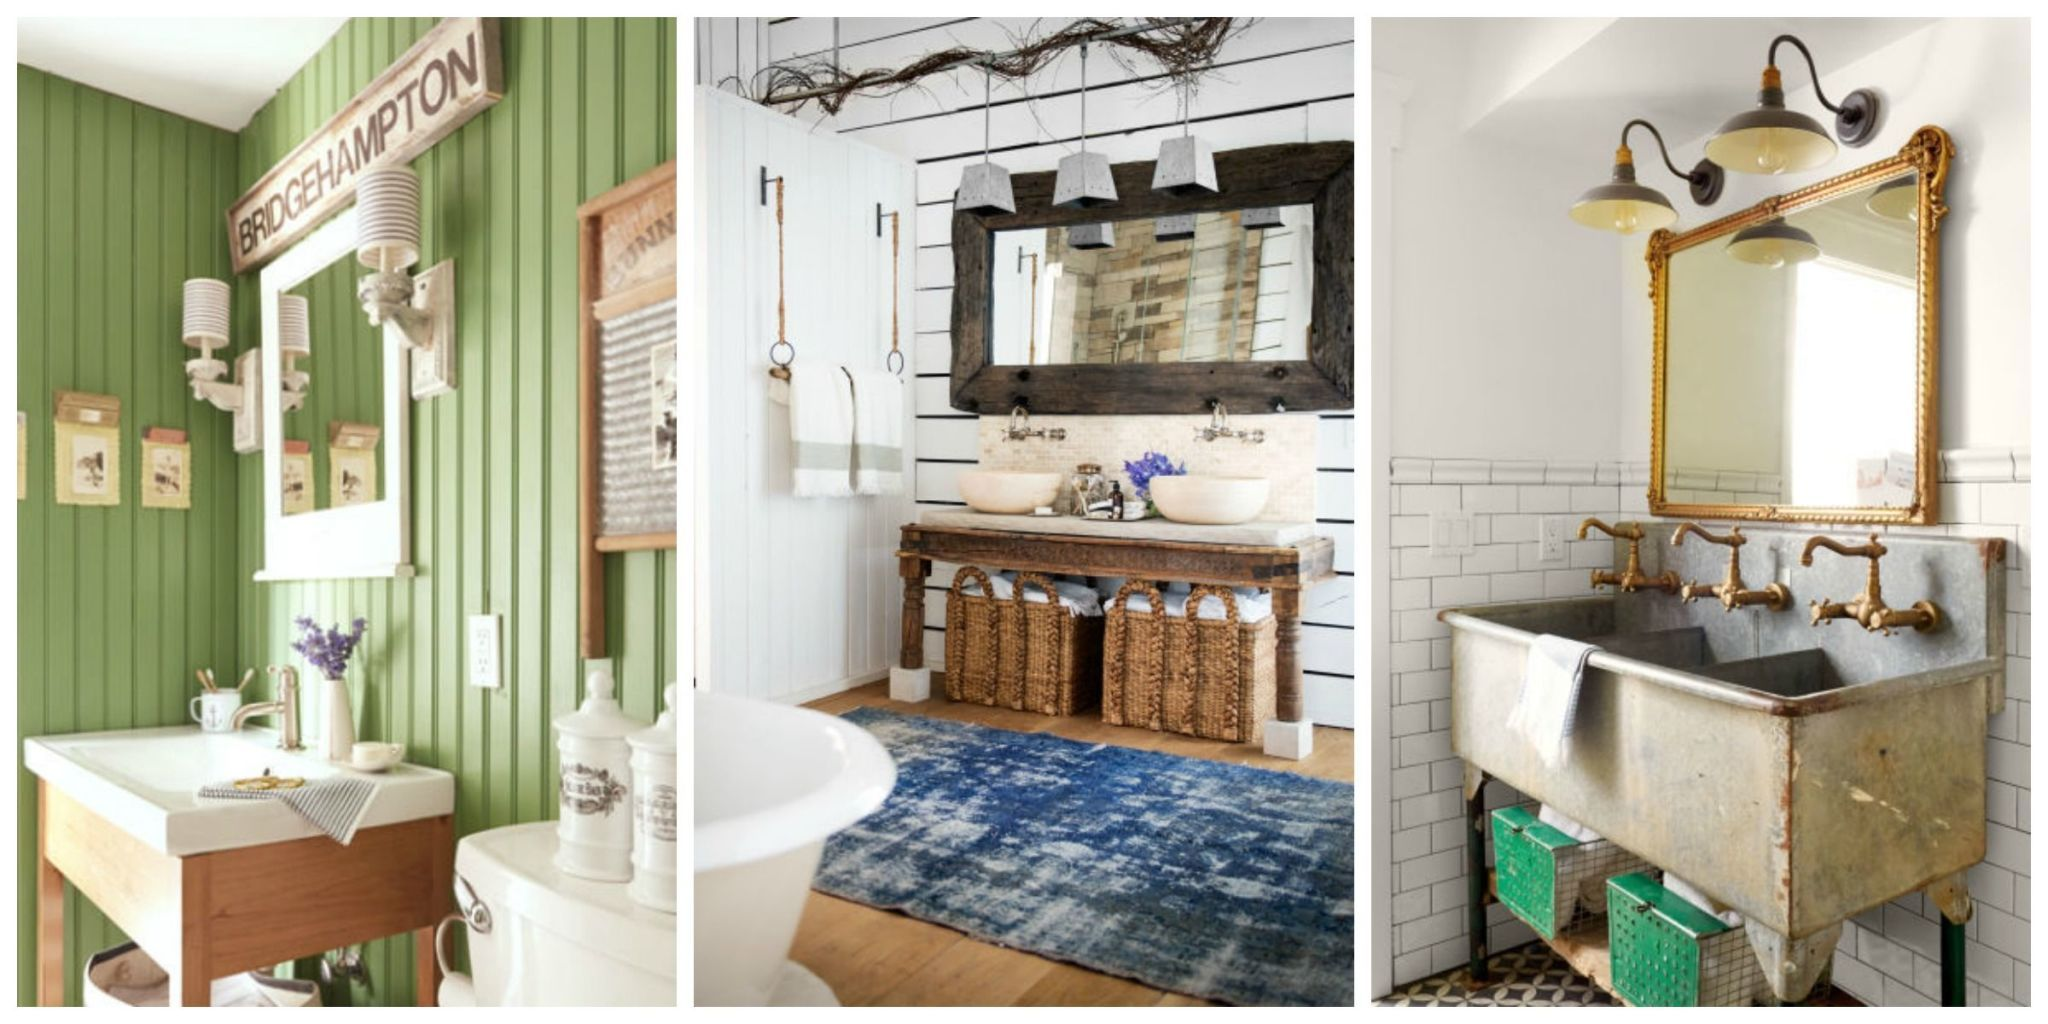 Merveilleux From Vintage Fixtures To Bold Wallpaper Patterns, These Beautiful Bathroom  Design Ideas Will Make Your Homeu0027s Smallest Room The Most Peaceful Spot In  The ...